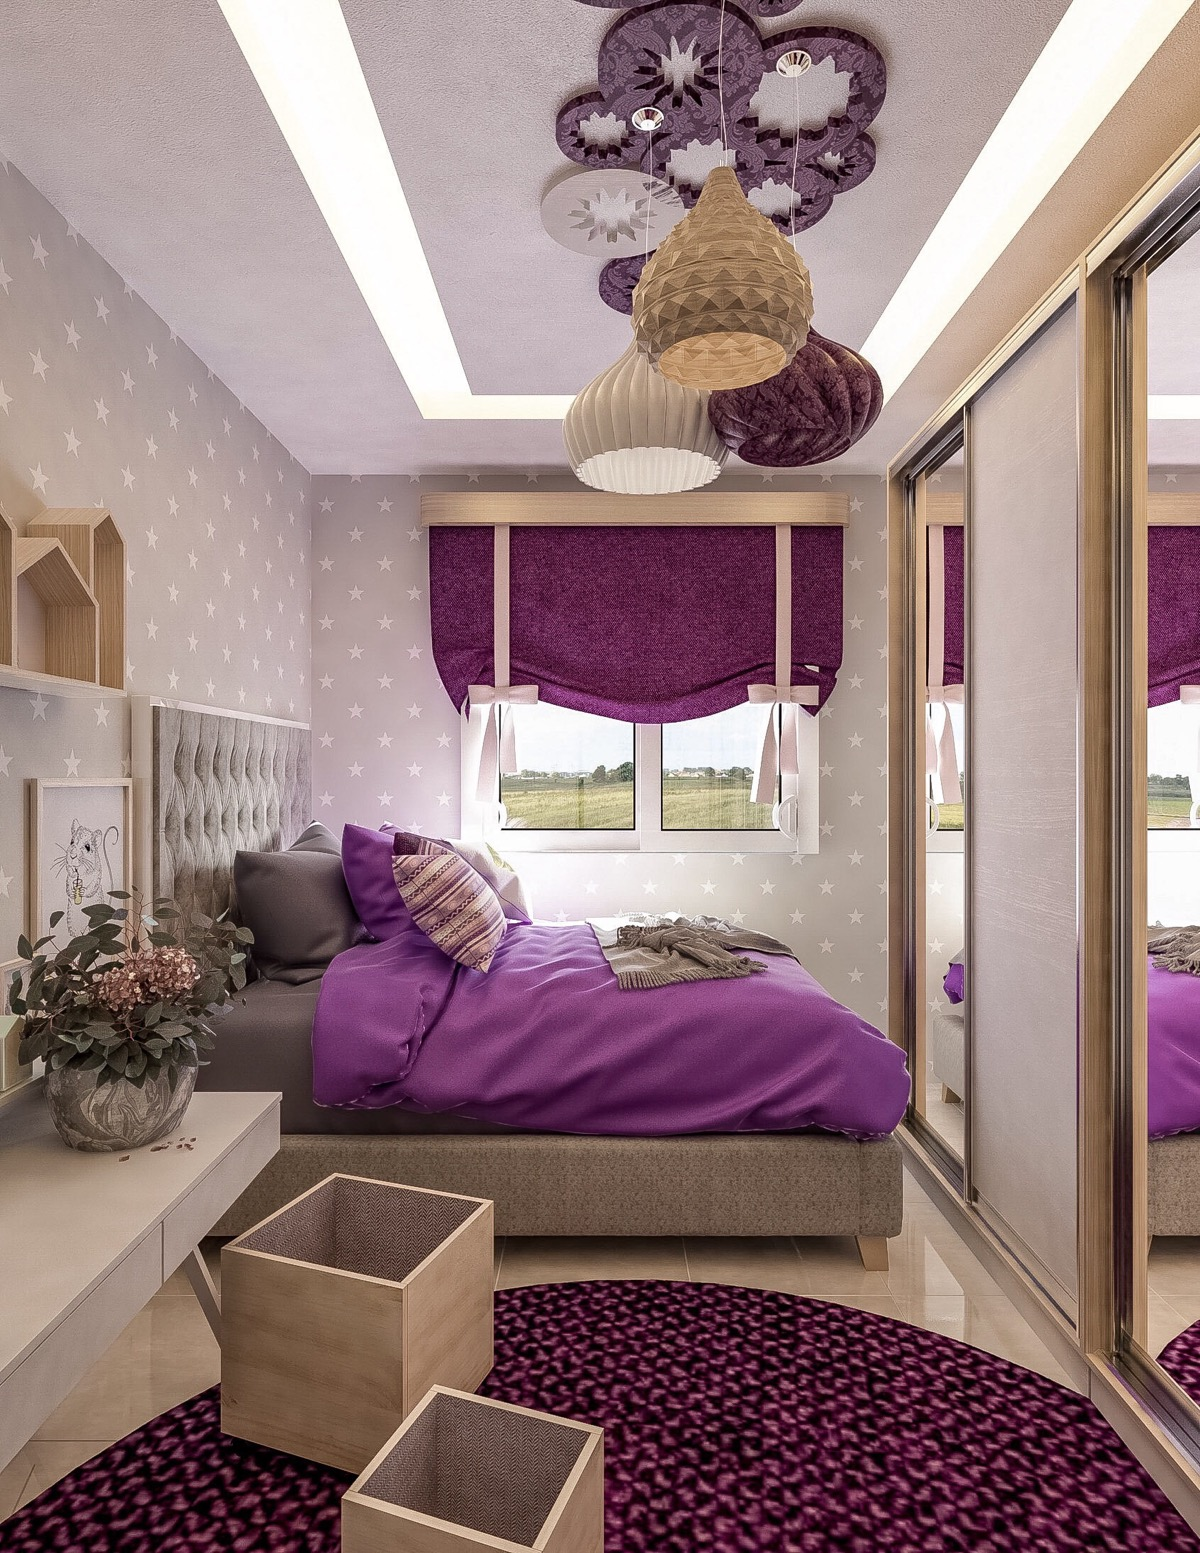 10 Purple Themed Bedrooms With Ideas, Tips & Accessories To Help